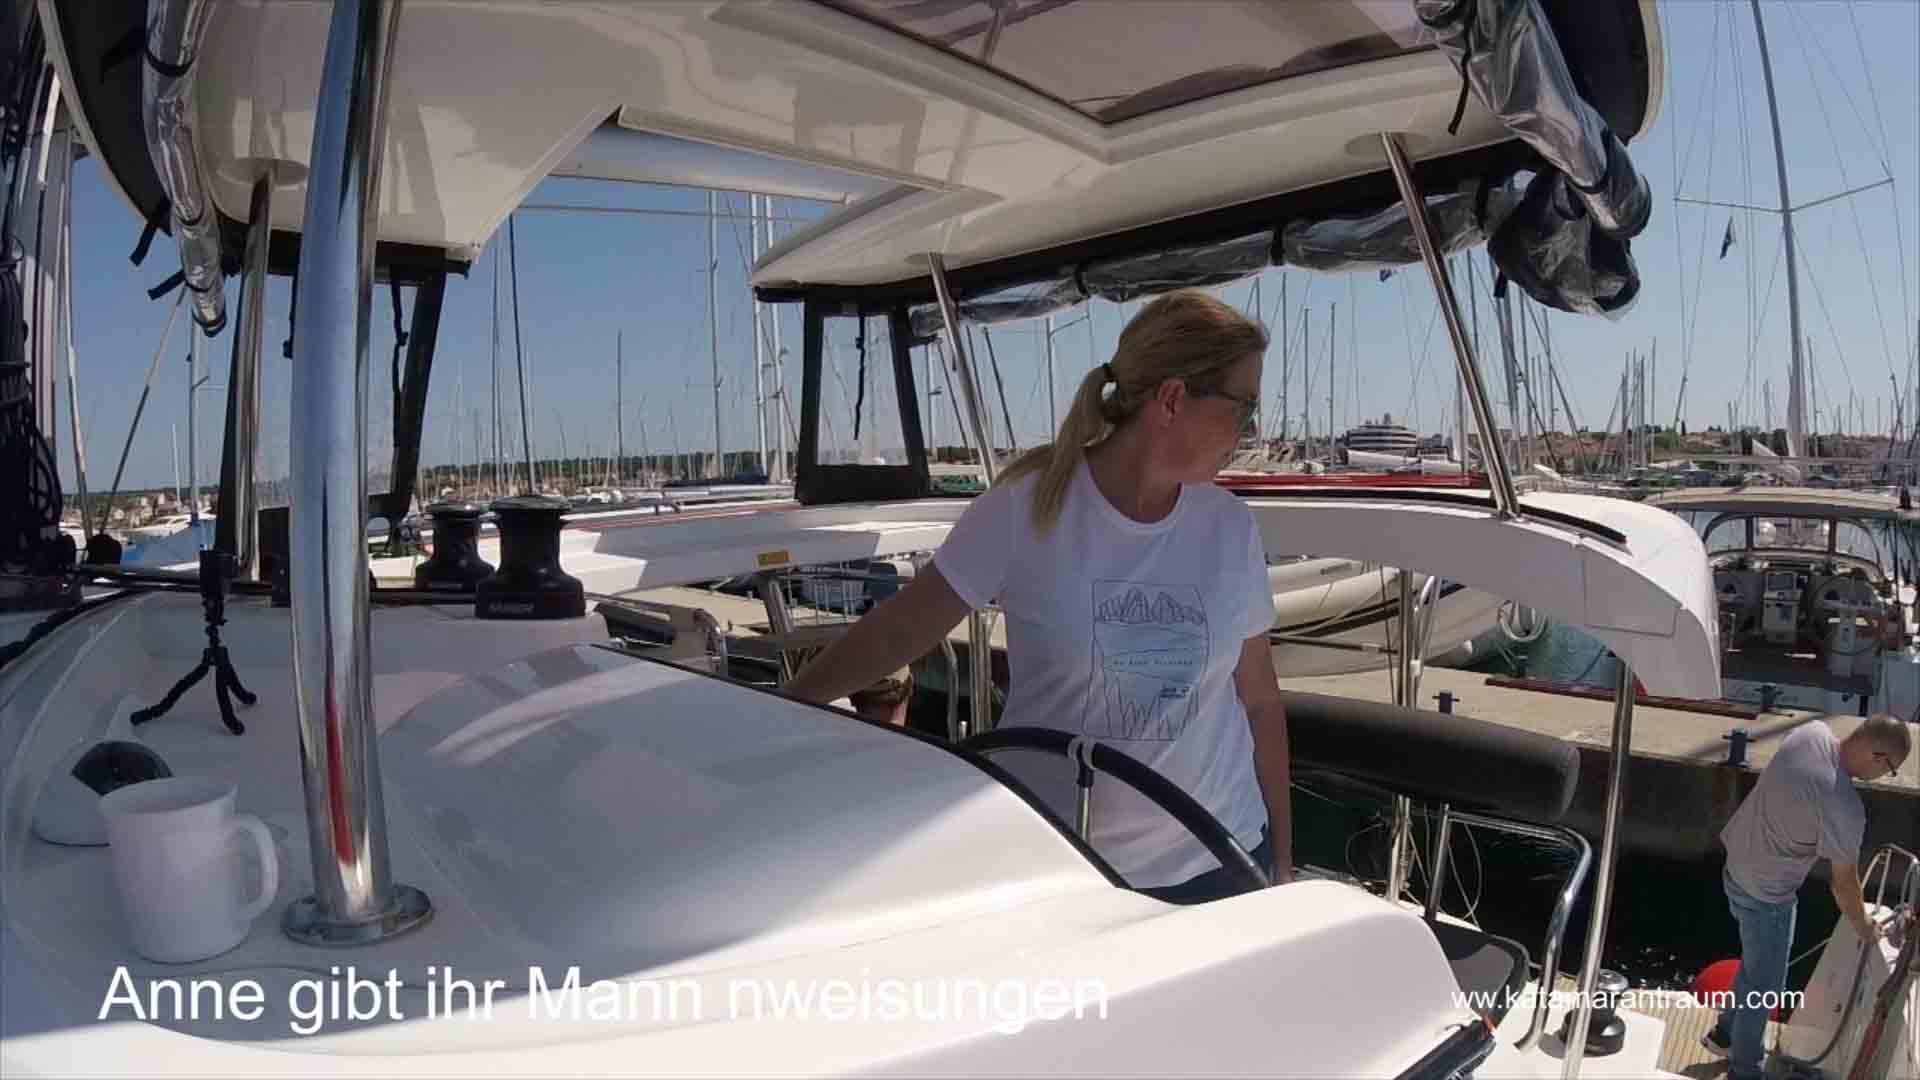 Anne gives instructions to the men during catamaran training